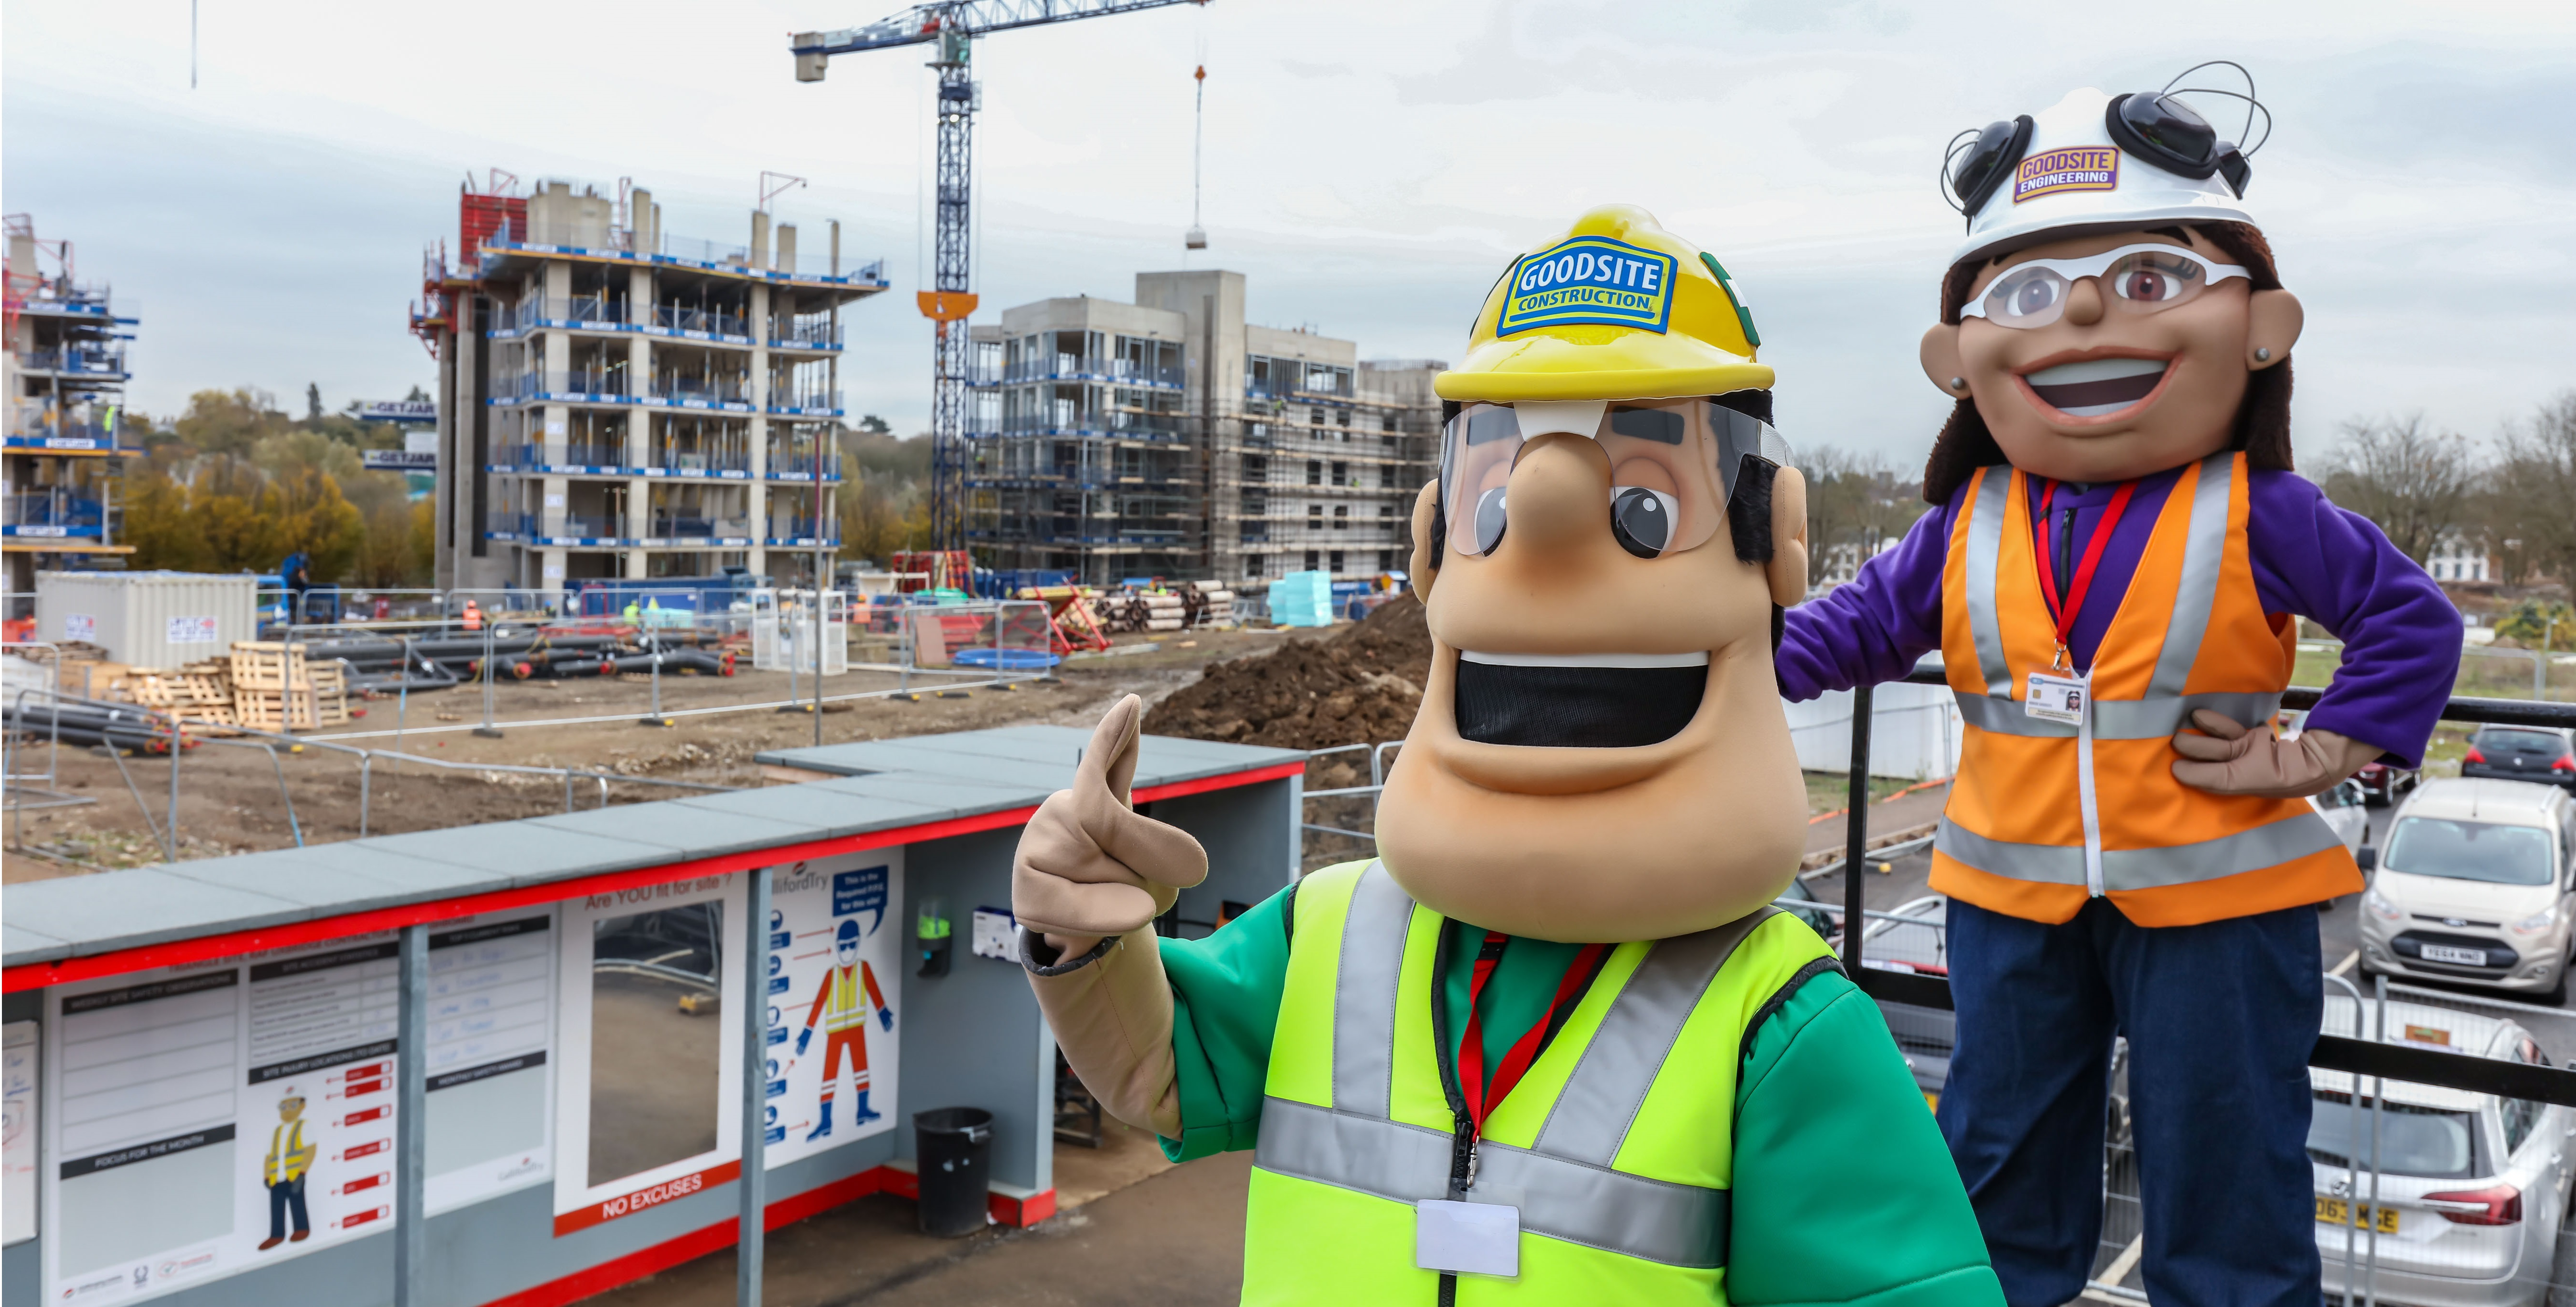 Health And Safety Ivor Goodsite